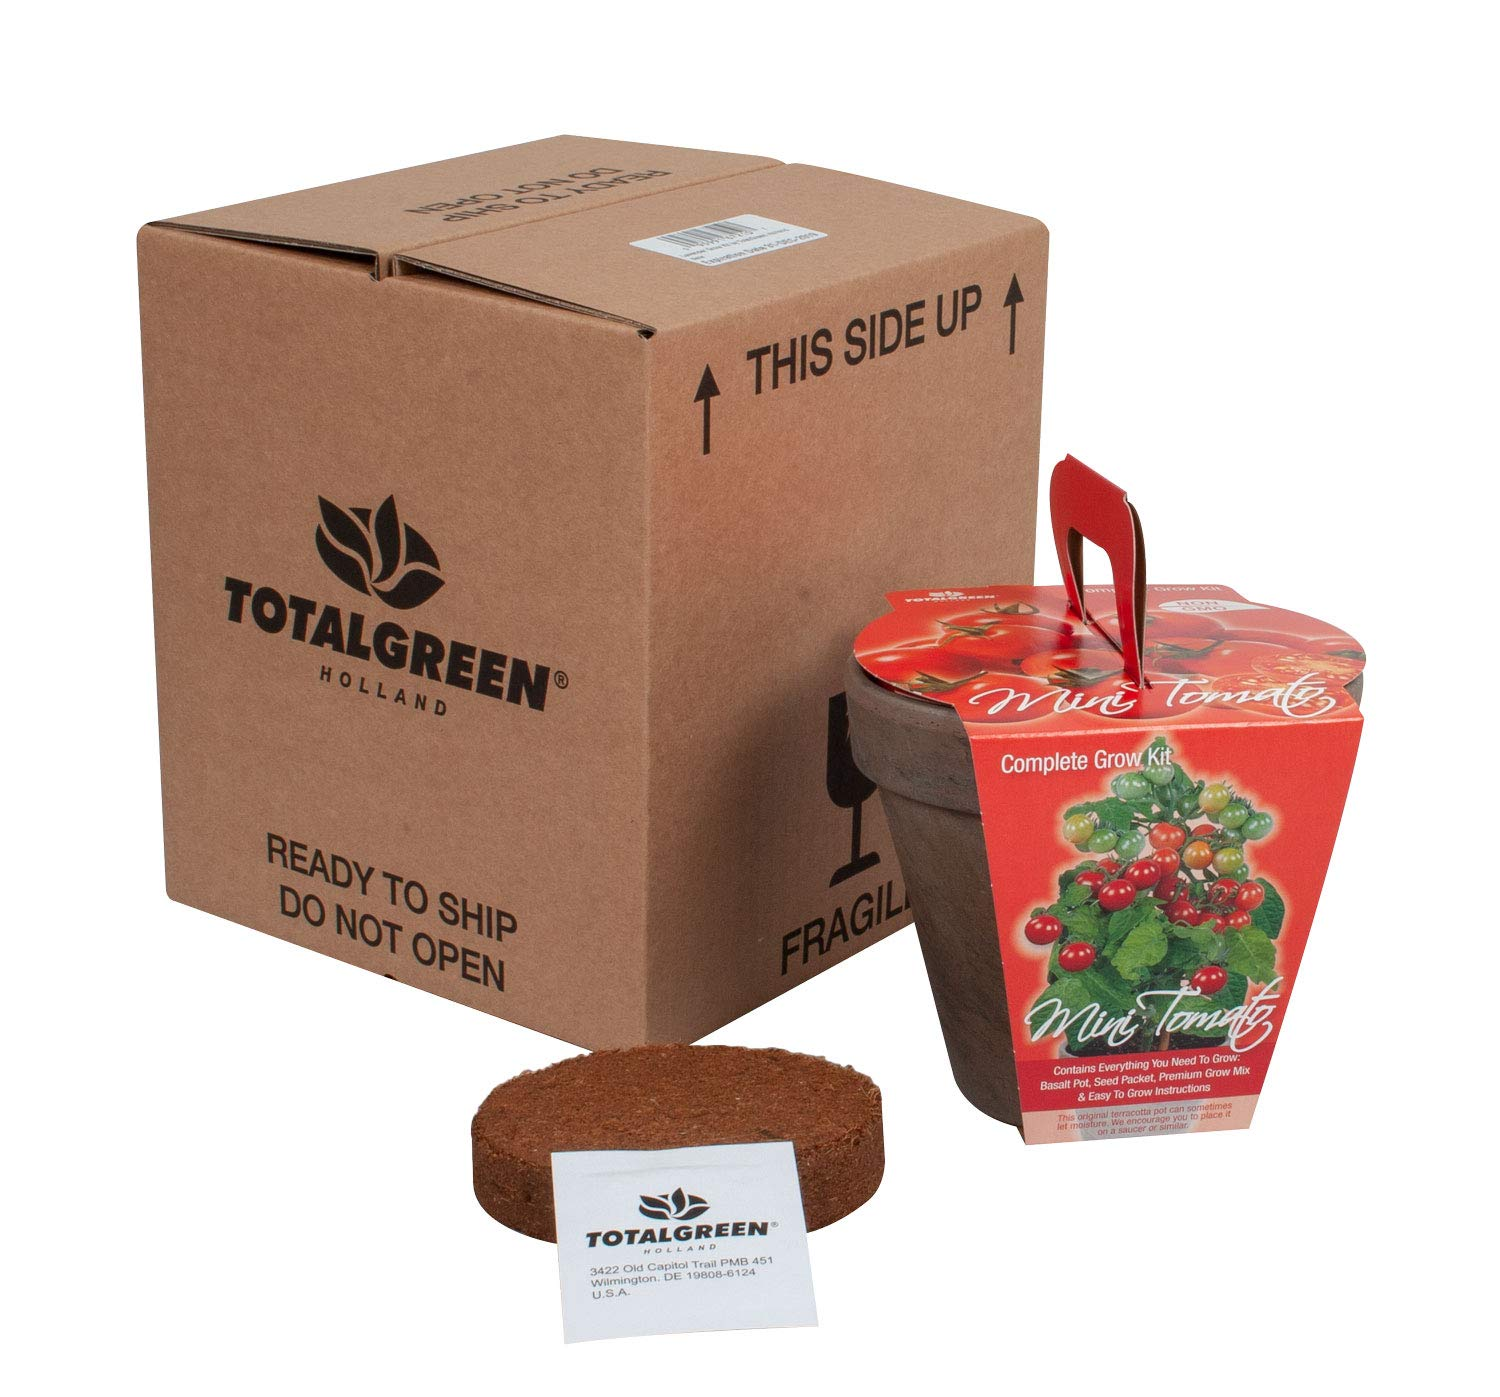 TotalGreen Holland Special Mini Tomato Grow Kit | Grow Fresh Mini Tomato Seeds Indoors | Great Gift Item | Grow Your Own Mini Tomato Plants in Unique Basalt Pot | Exclusive Kit by TotalGreen Holland by TotalGreen Holland (Image #6)